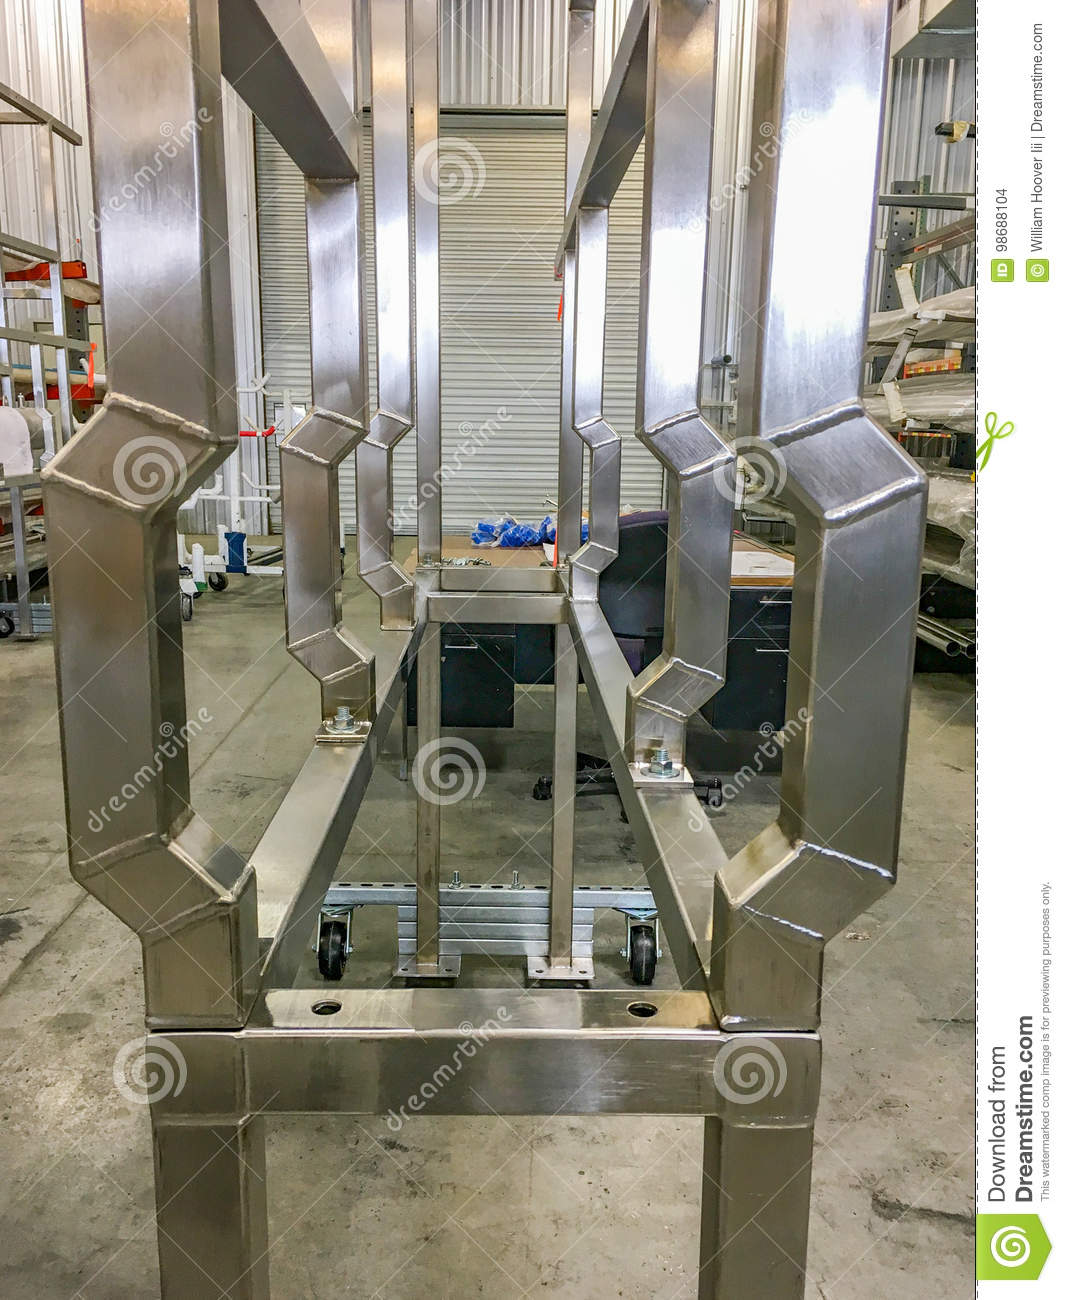 Heat Duct Supports : Stainless steel pipe support rack stock photo image of